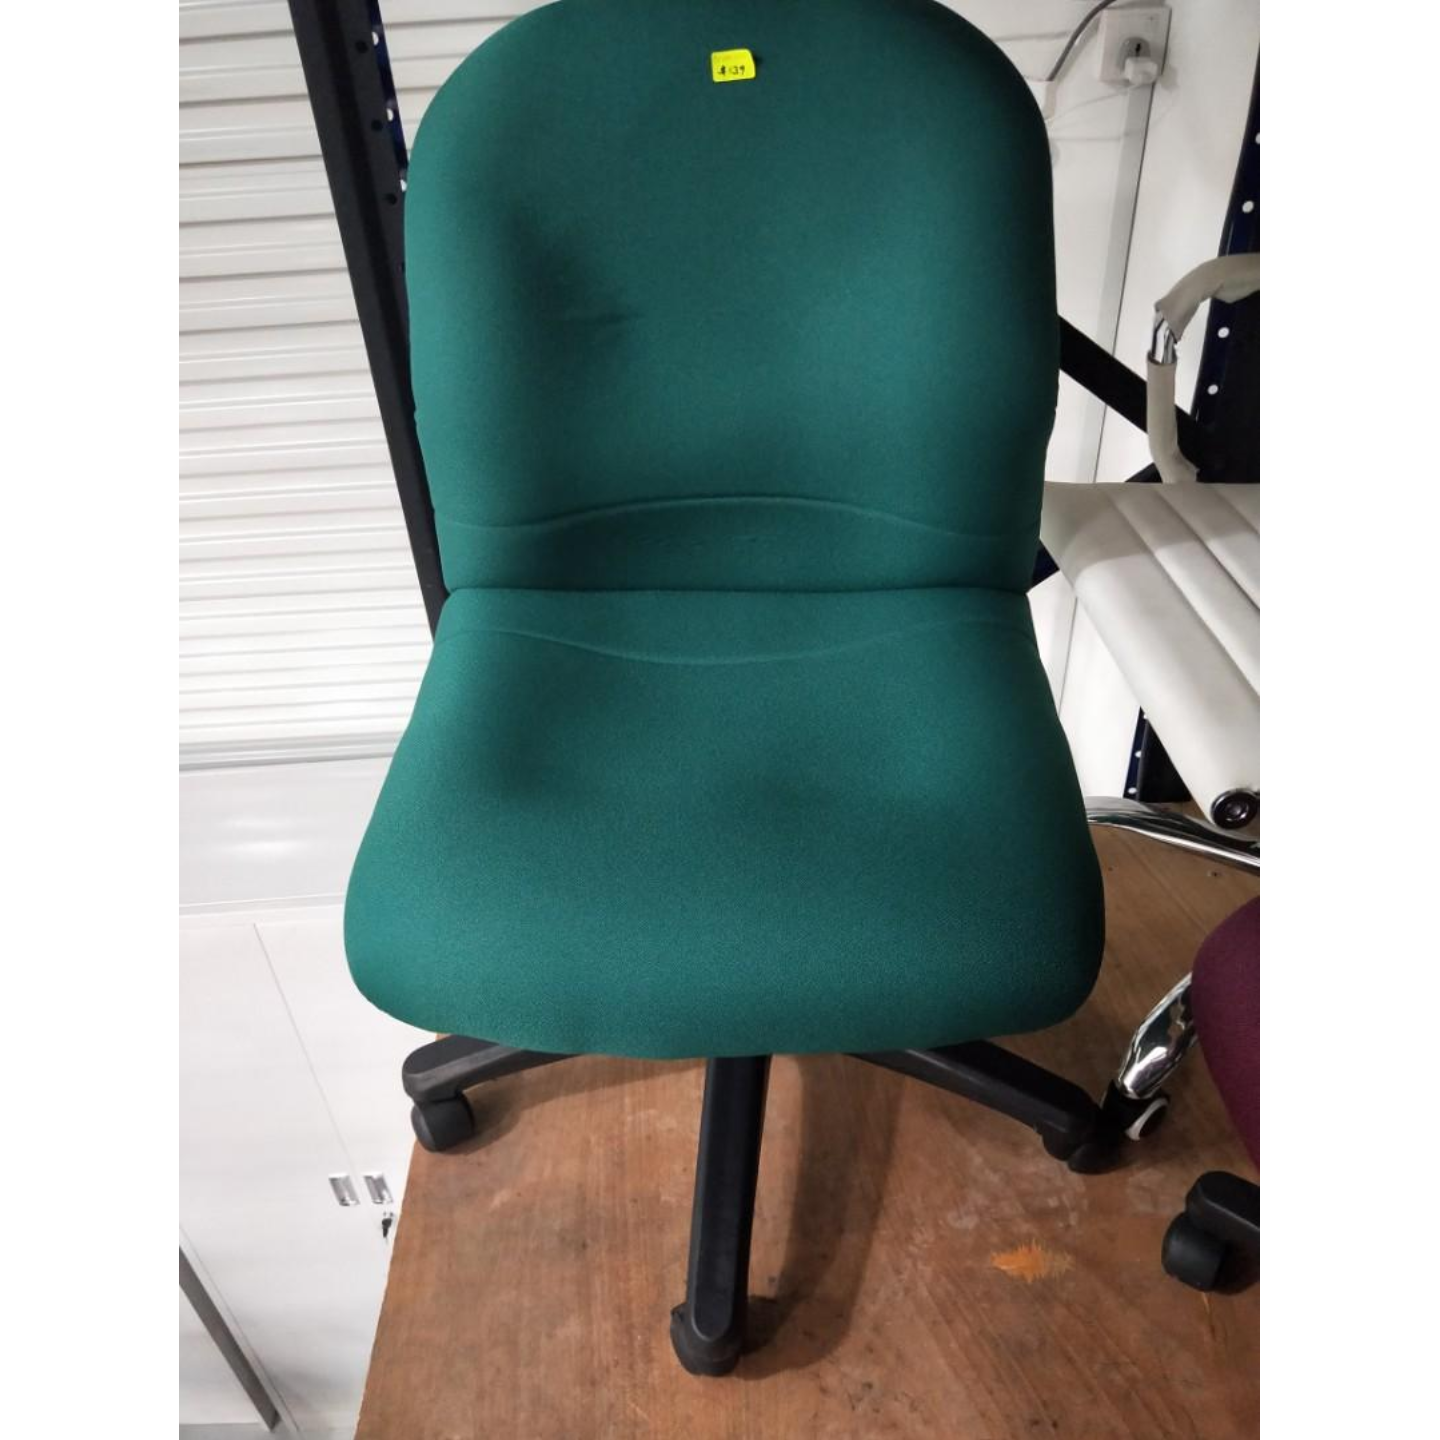 HINA Low Back Office Chair in EMERALD GREEN